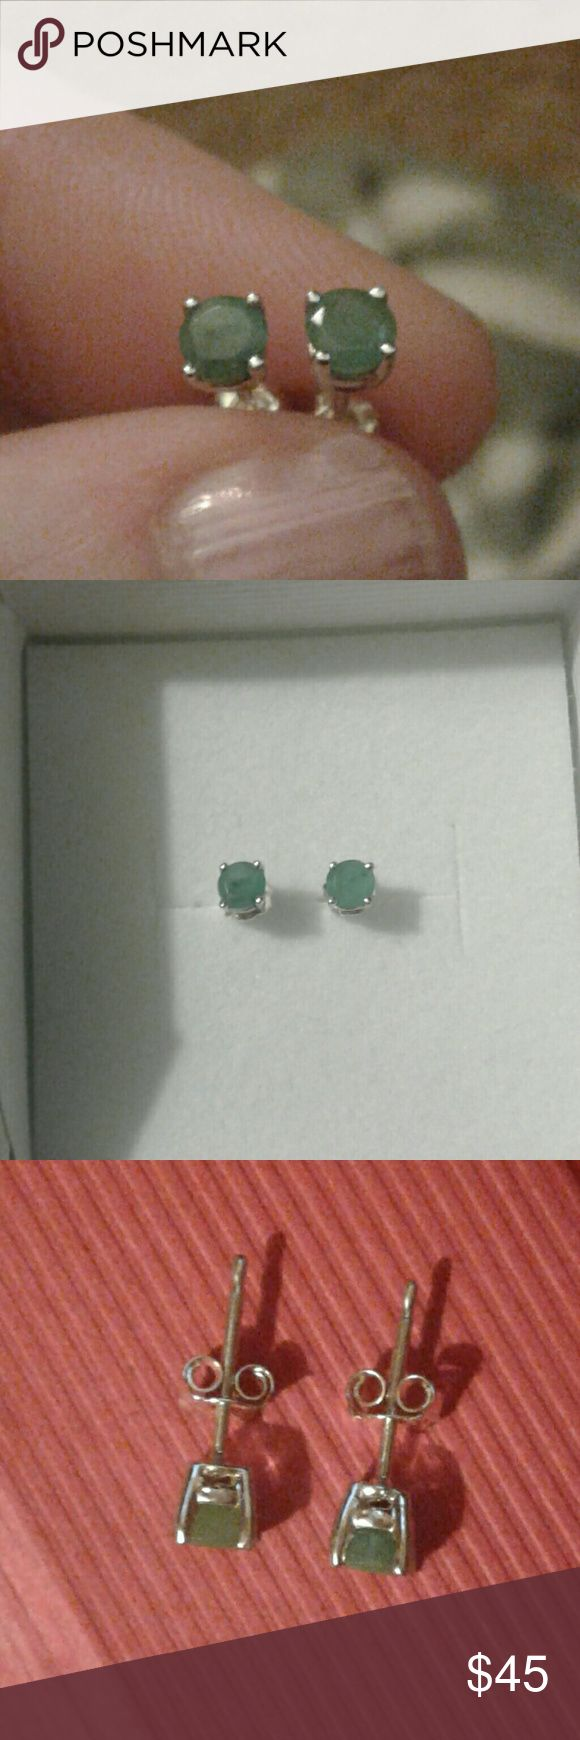 Natural Round .5ctw Emerald Studs Solid 925S Gorgeous, BNIB...Natural, Round- Cut, Richly Colored, Emerald Stud Earrings, .5ctw, Set in Solid 925 Sterling Silver...Comes With a Packaged, Anti- Tarnish, Polishing Cloth and a Jewelry Pouch or Gift Box. Fine Jewelry Jewelry Earrings